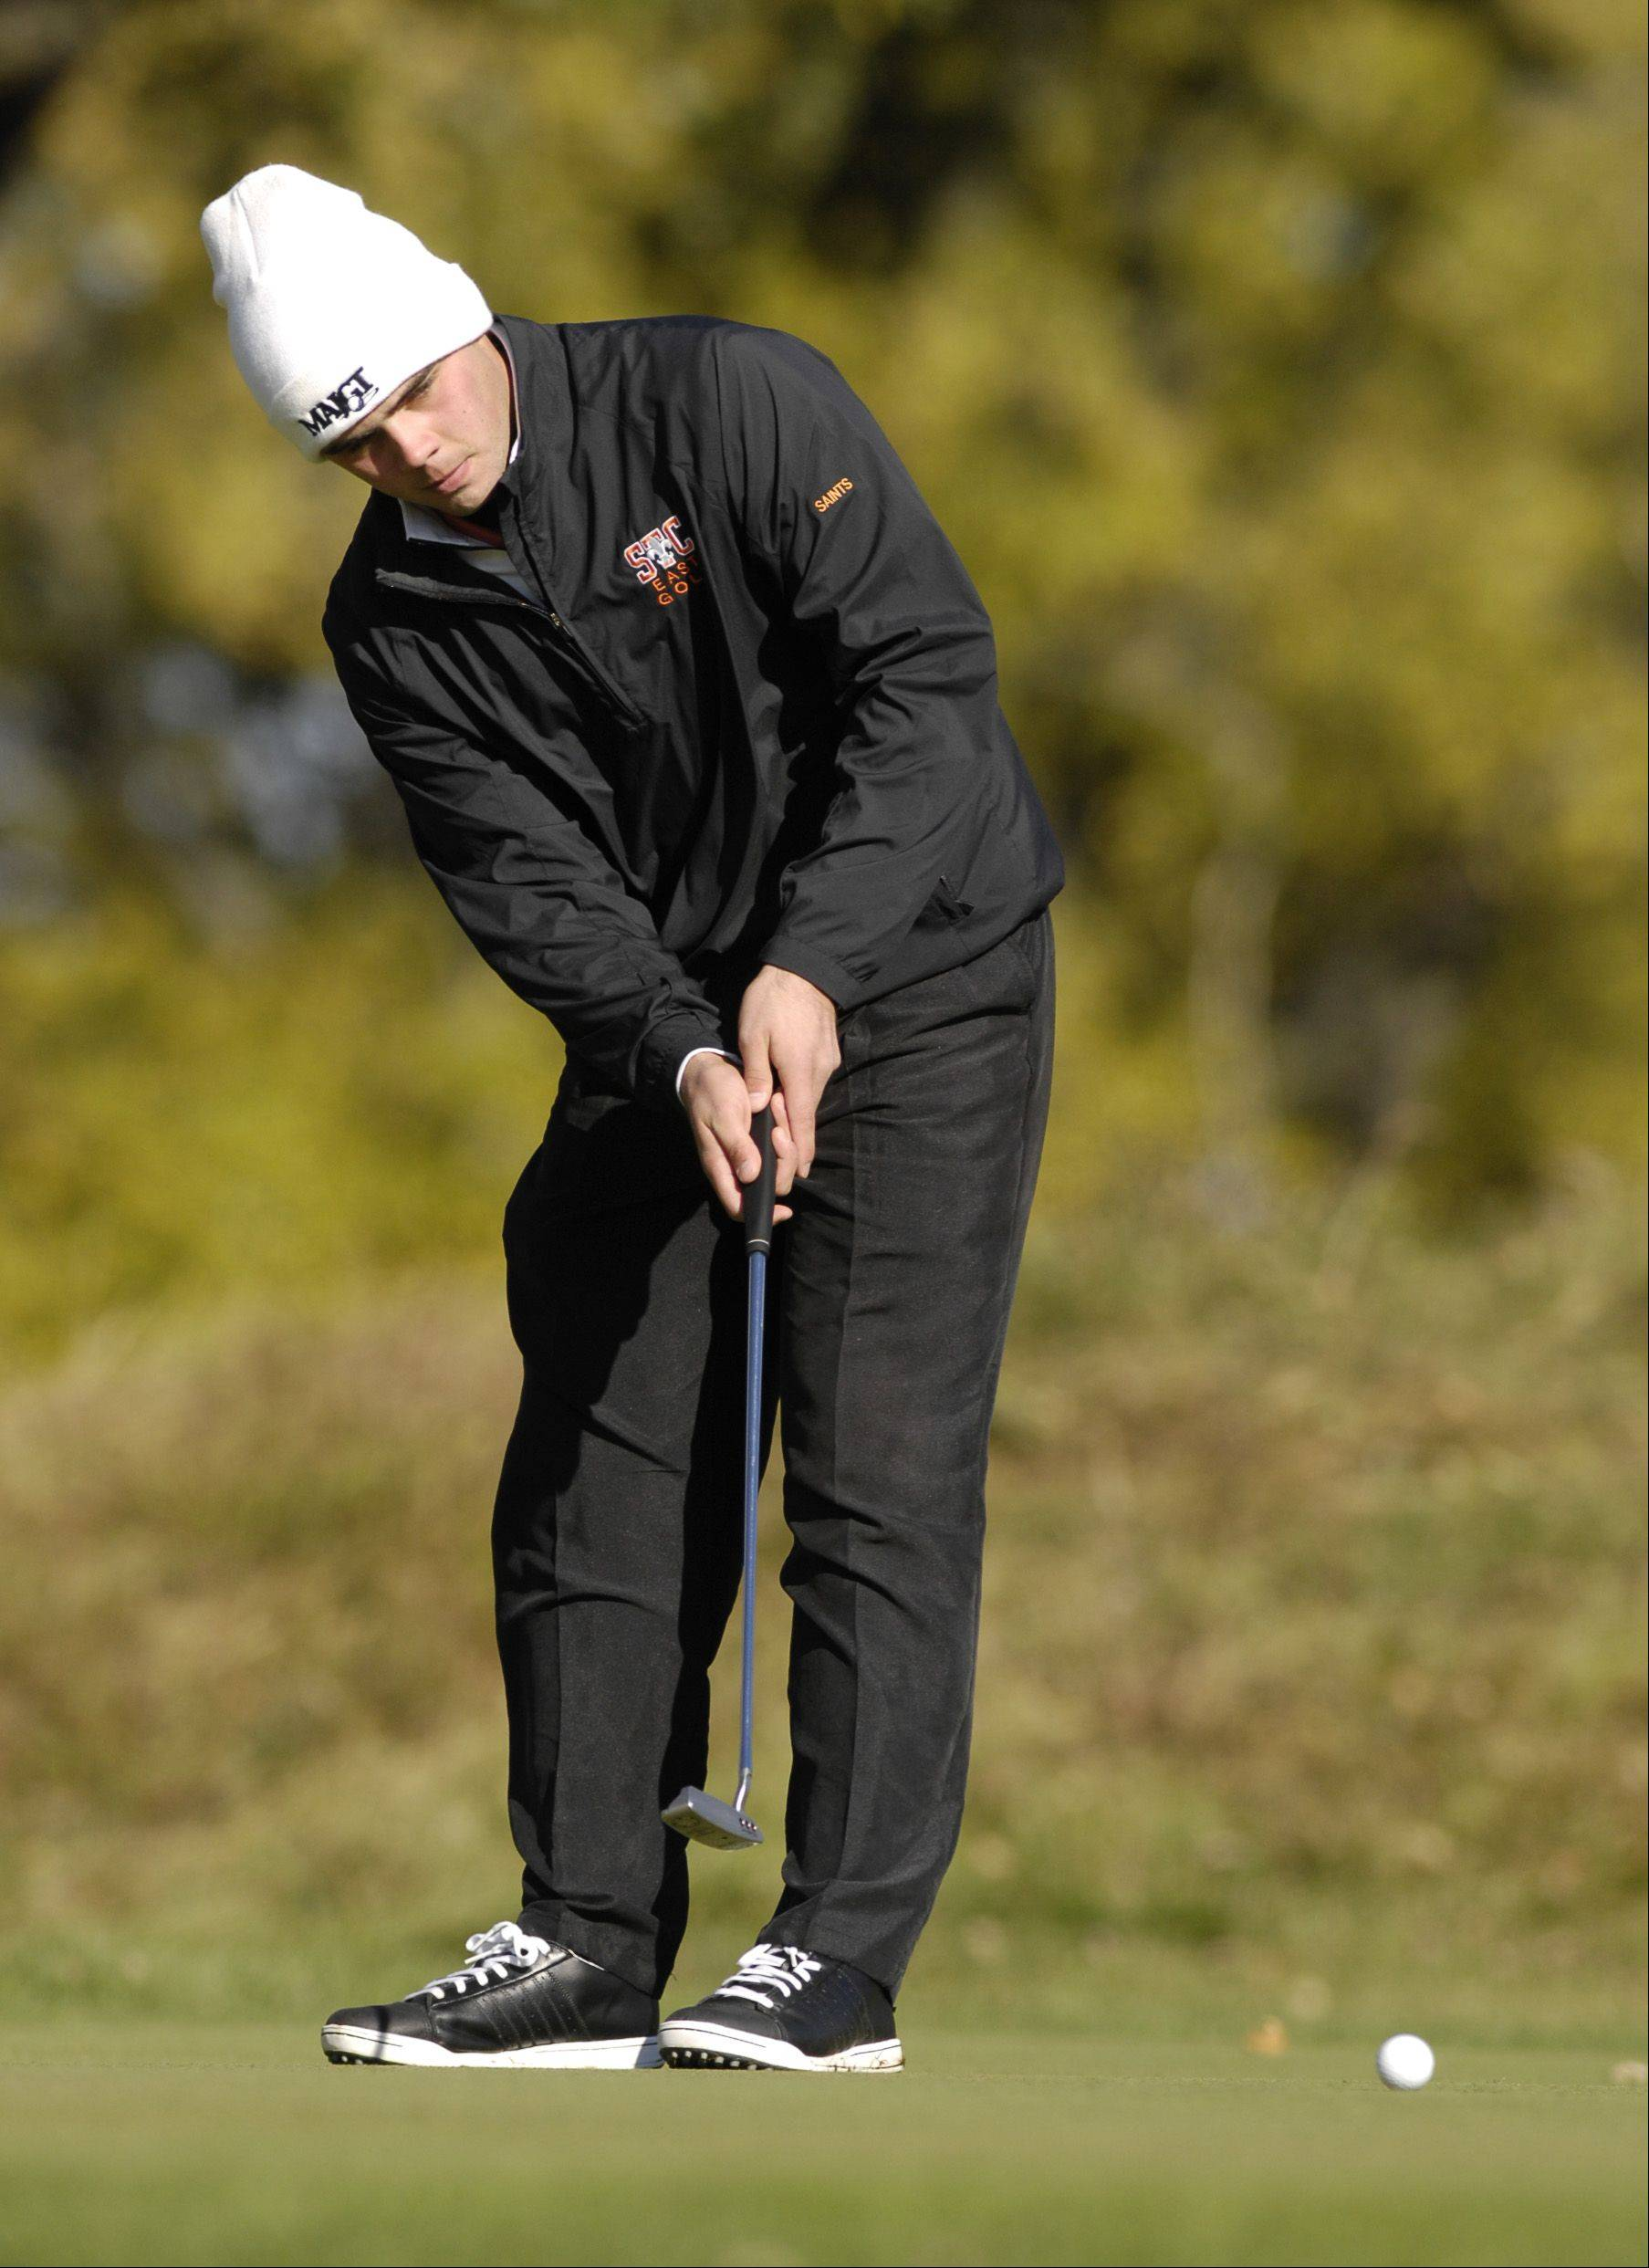 Max Kelly of St. Charles East putts off during the St. Charles East boys varsity golf sectional at St. Andrews Golf Club in West Chicago, Monday.